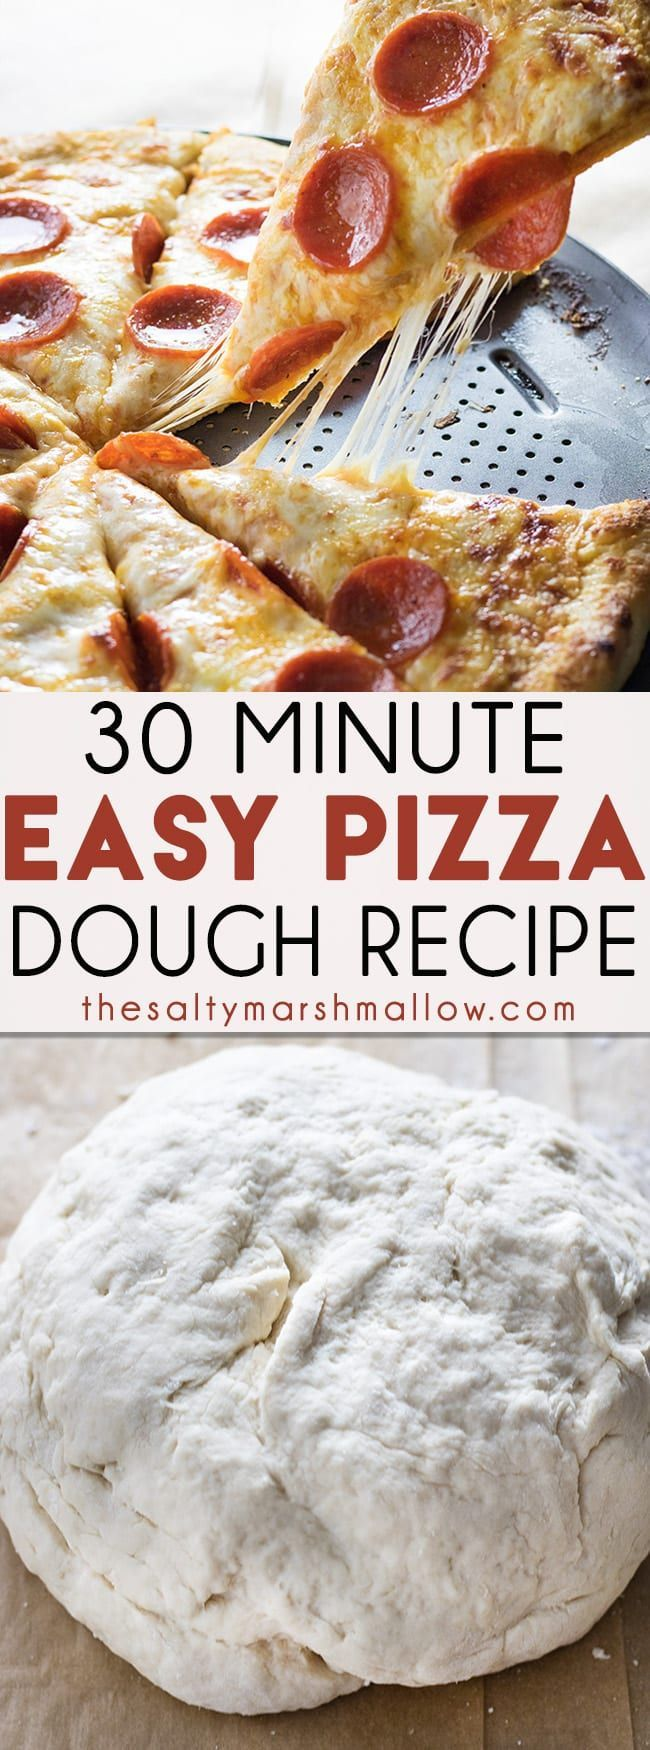 Easy Miracle Pizza Dough #simplehealthydinner